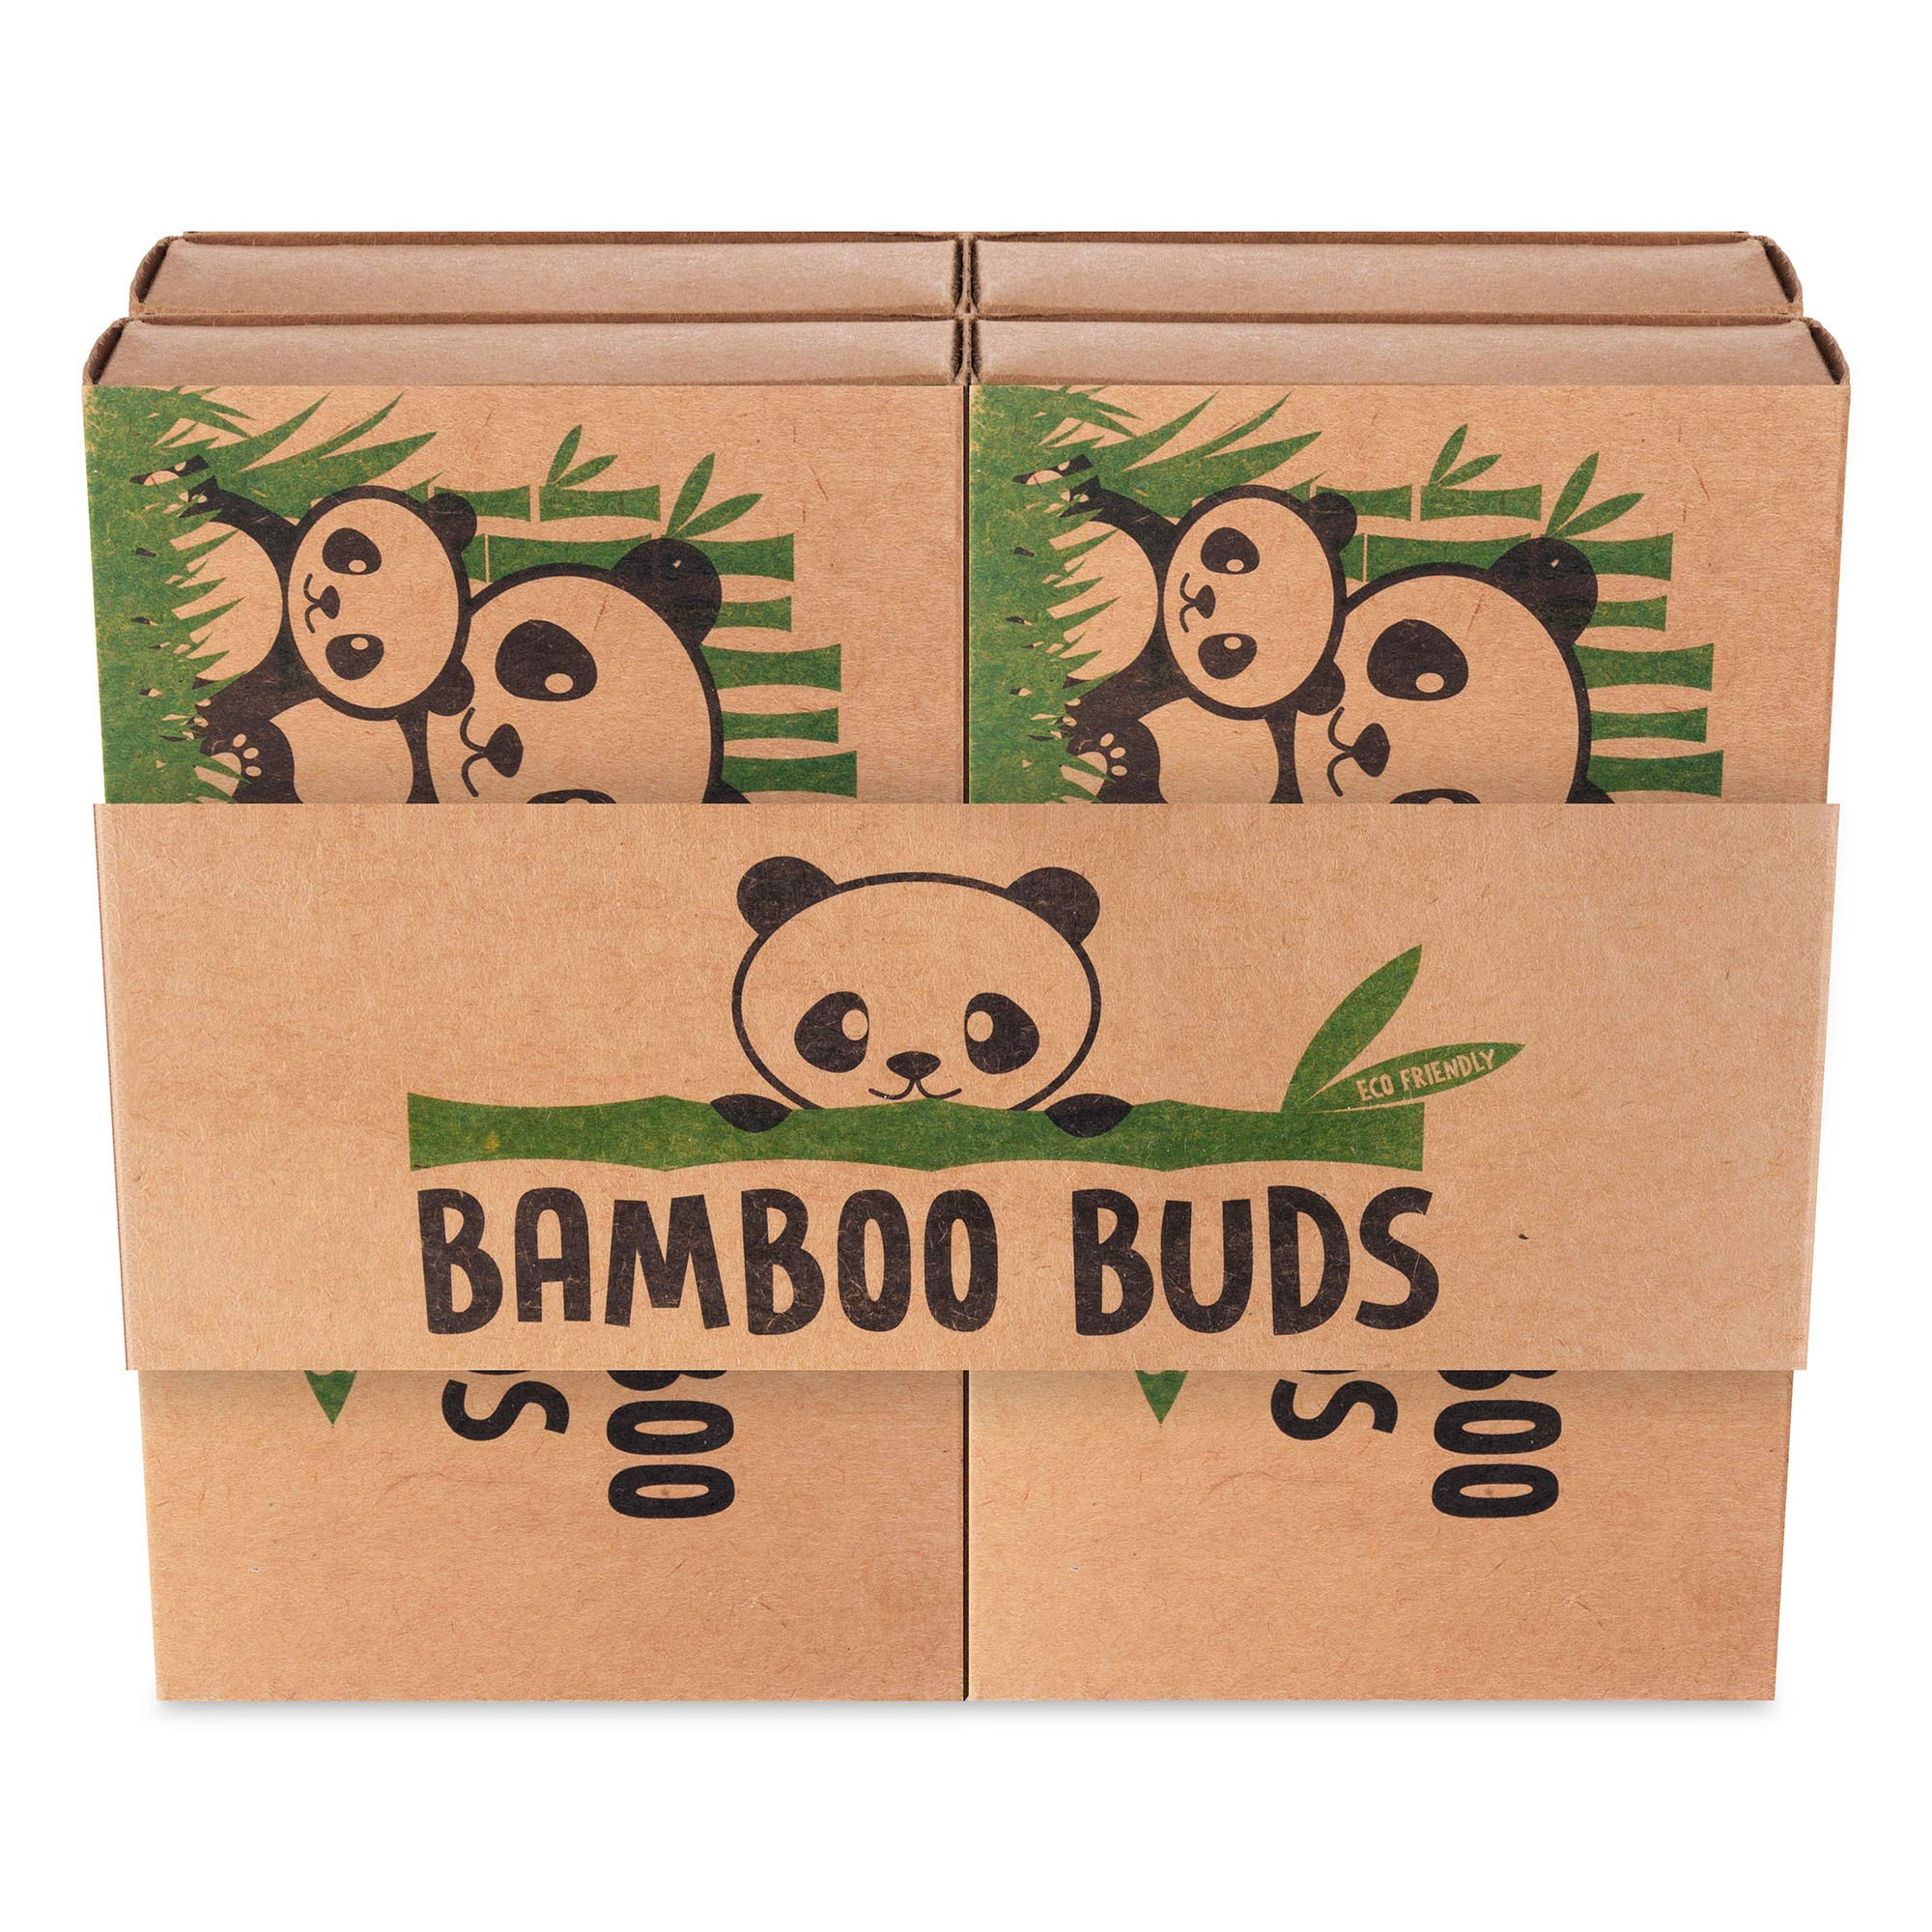 Bamboo Cotton Buds | Pack of 200pcs Eco-Friendly and Biodegradable Cotton Buds